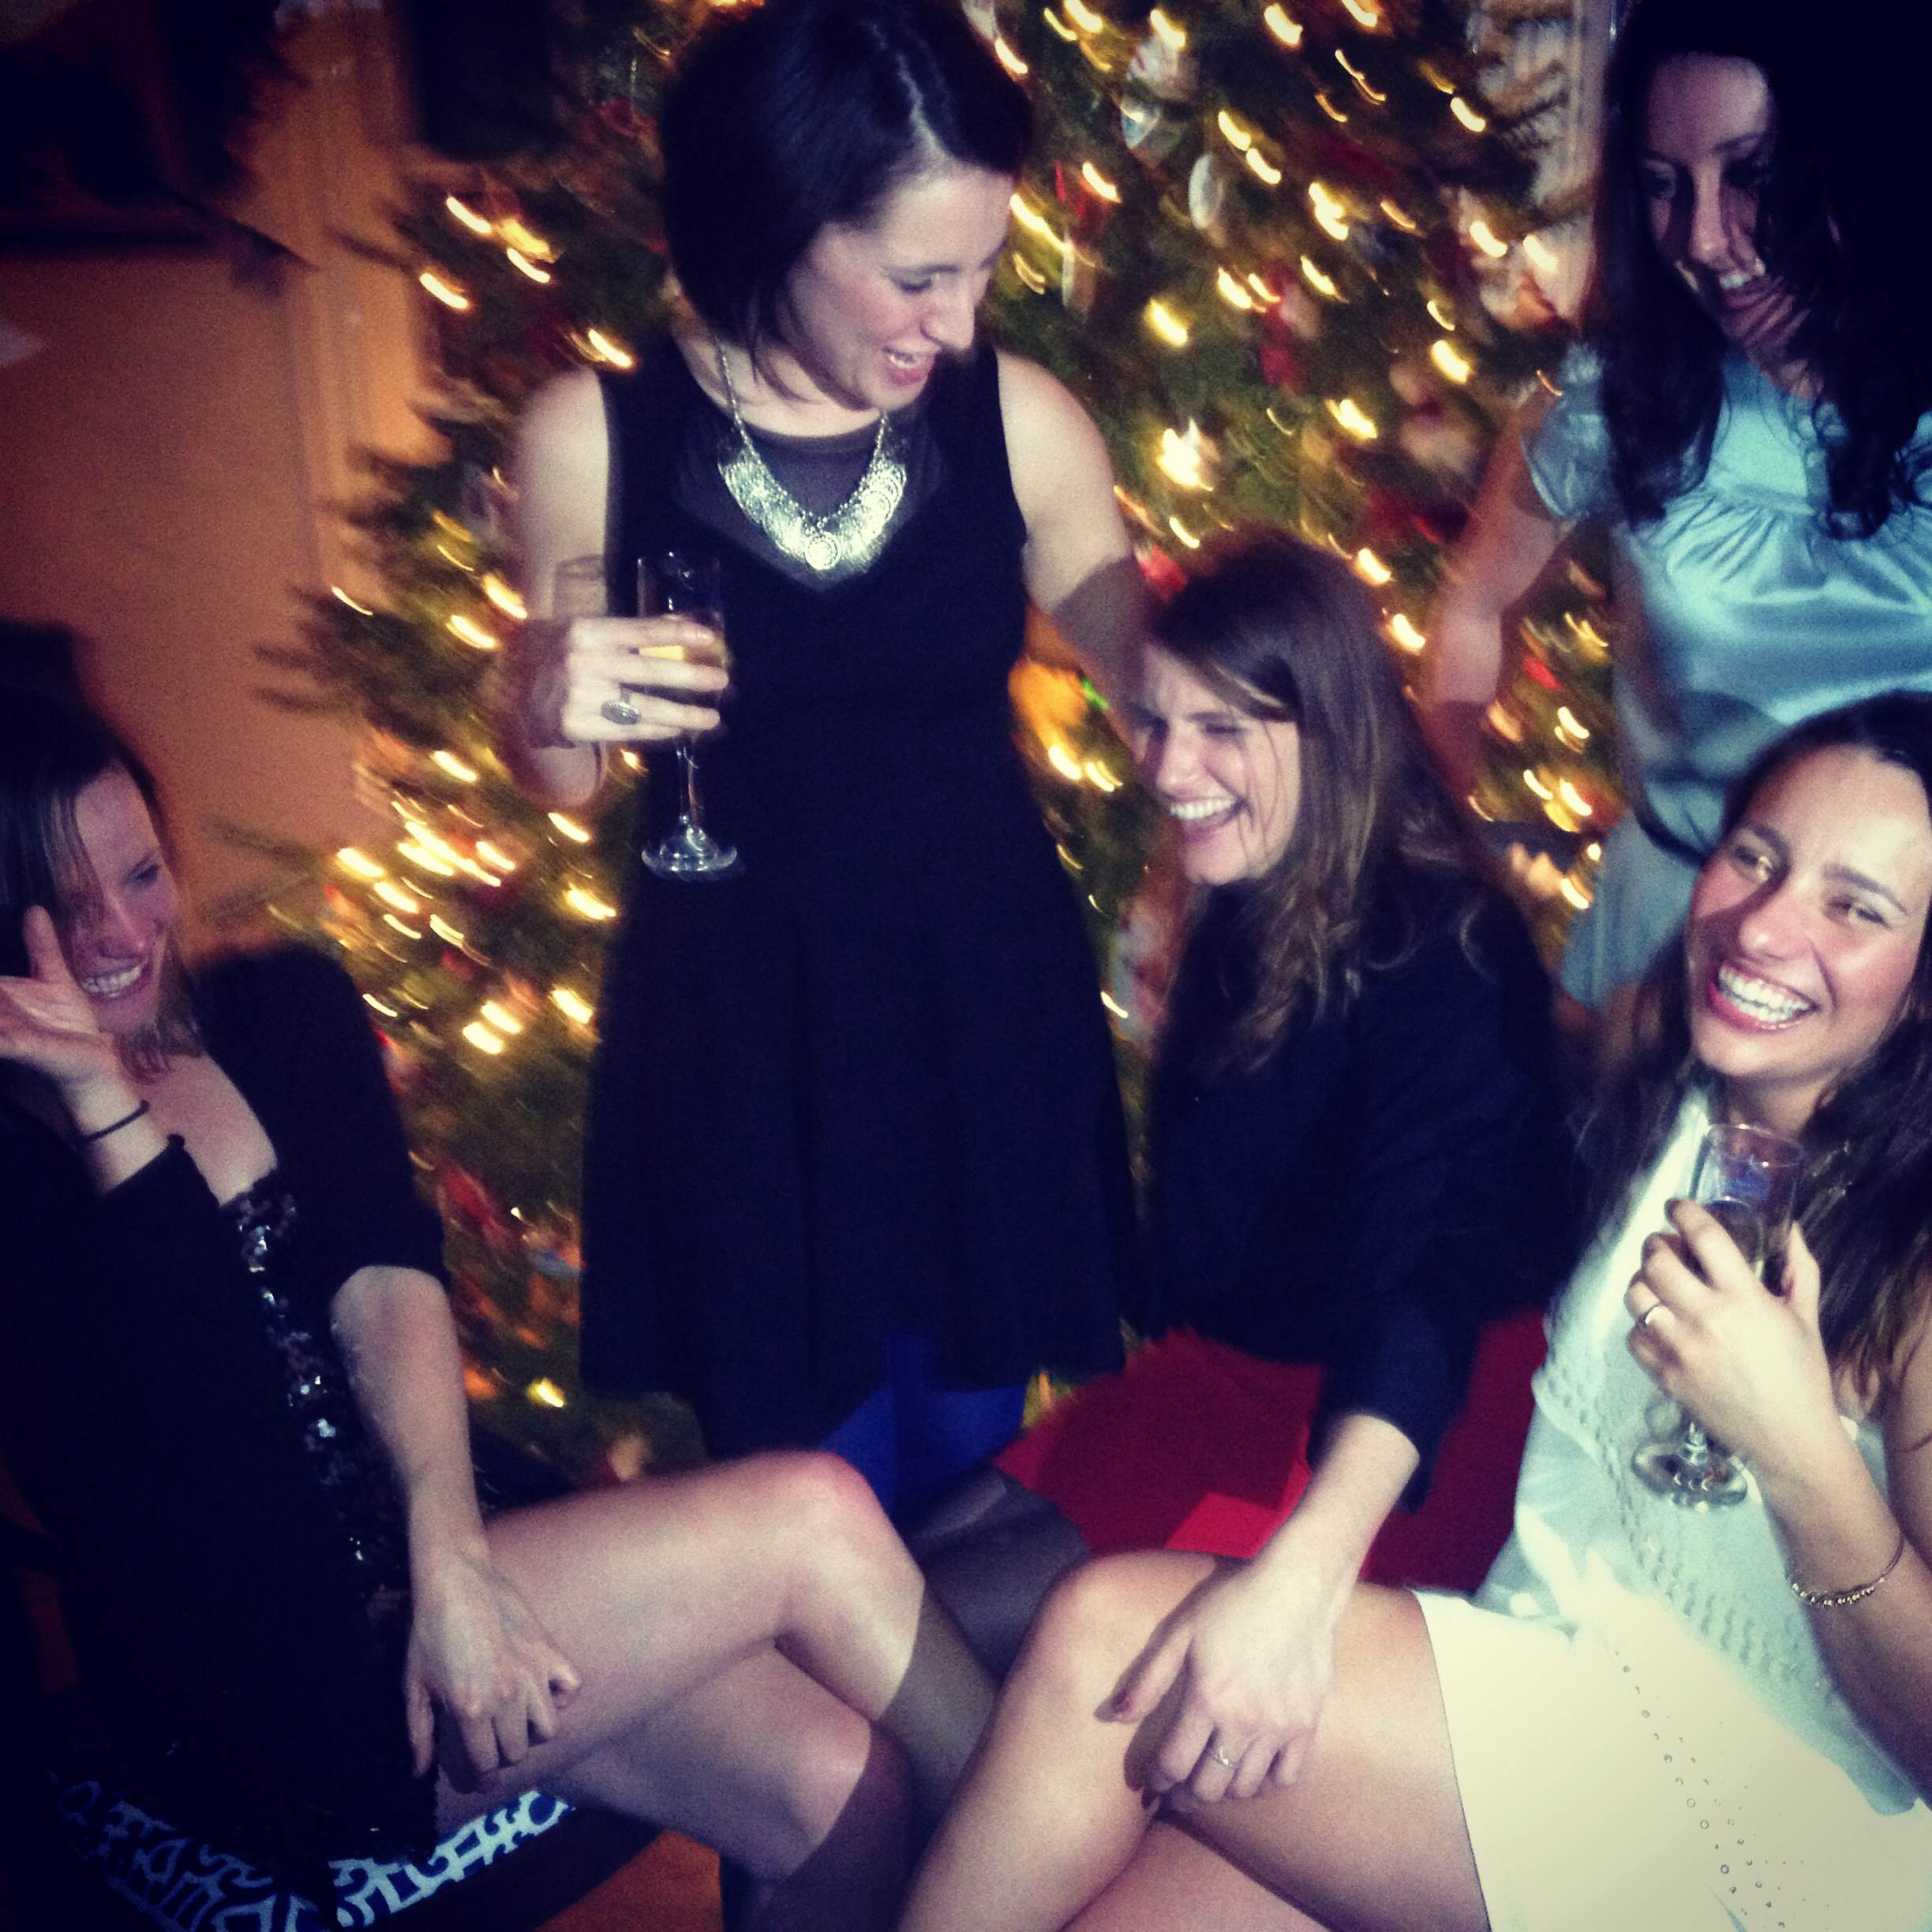 holiday party social media etiquette